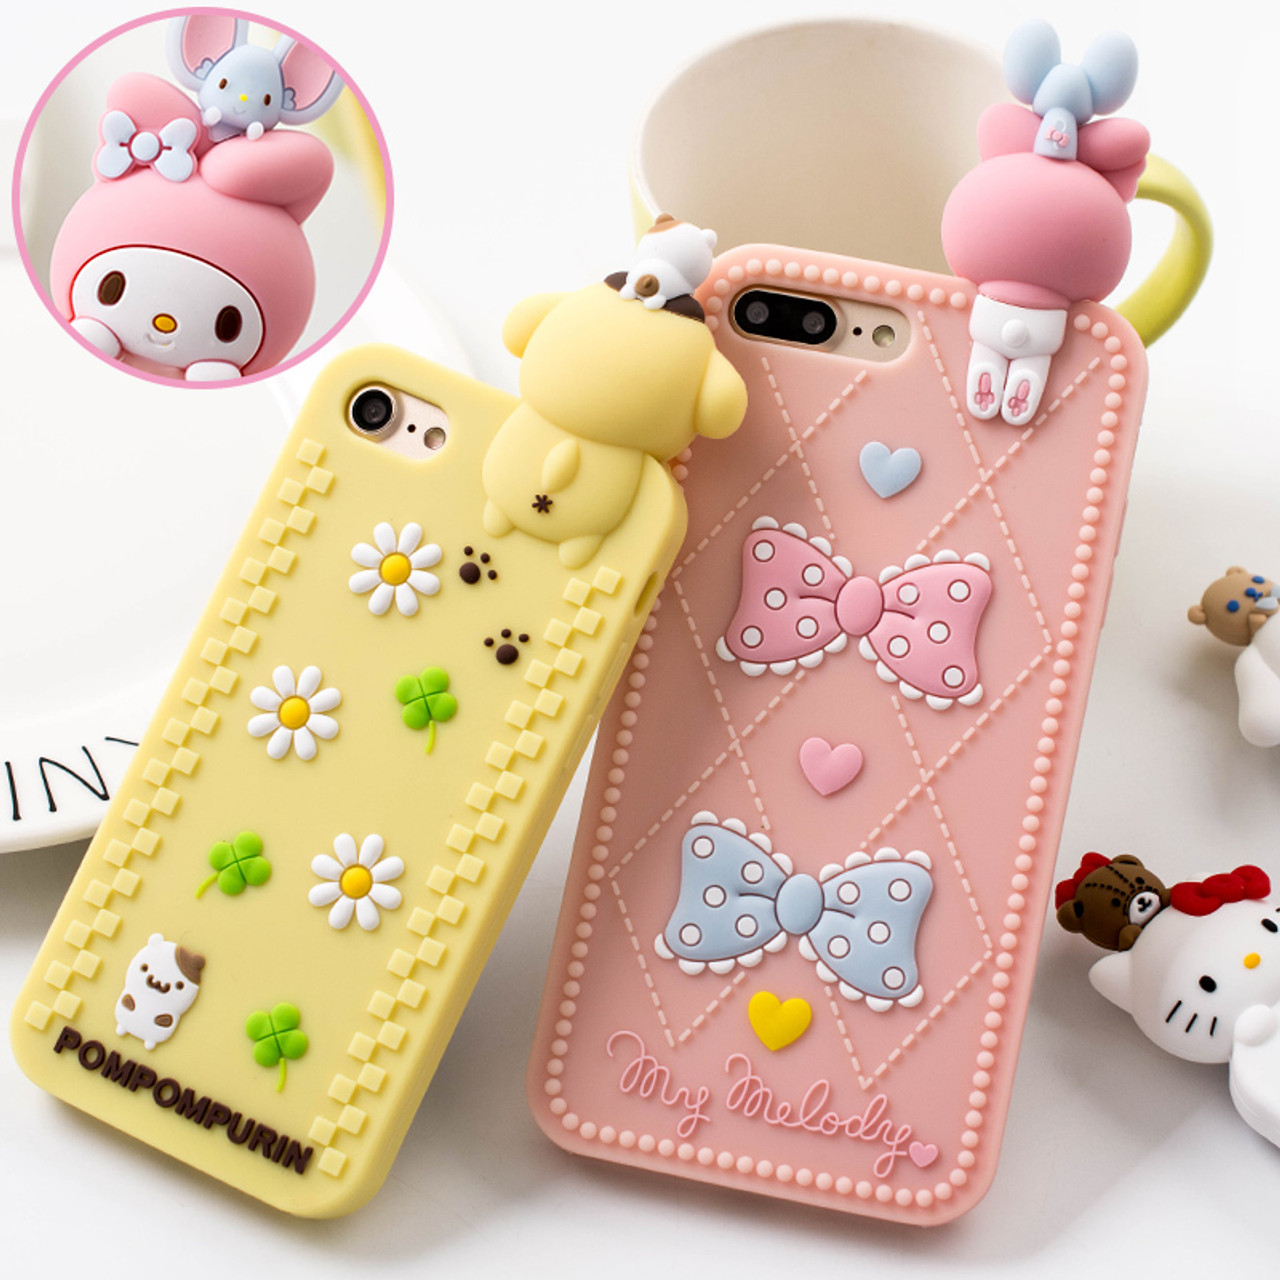 online retailer ddcb1 e17b4 For iPhone X 7 8 7Plus full case 3D hello kitty / Melody phone Cases For  iphone 6 6s 6plus Bear Soft back cover case girl pink